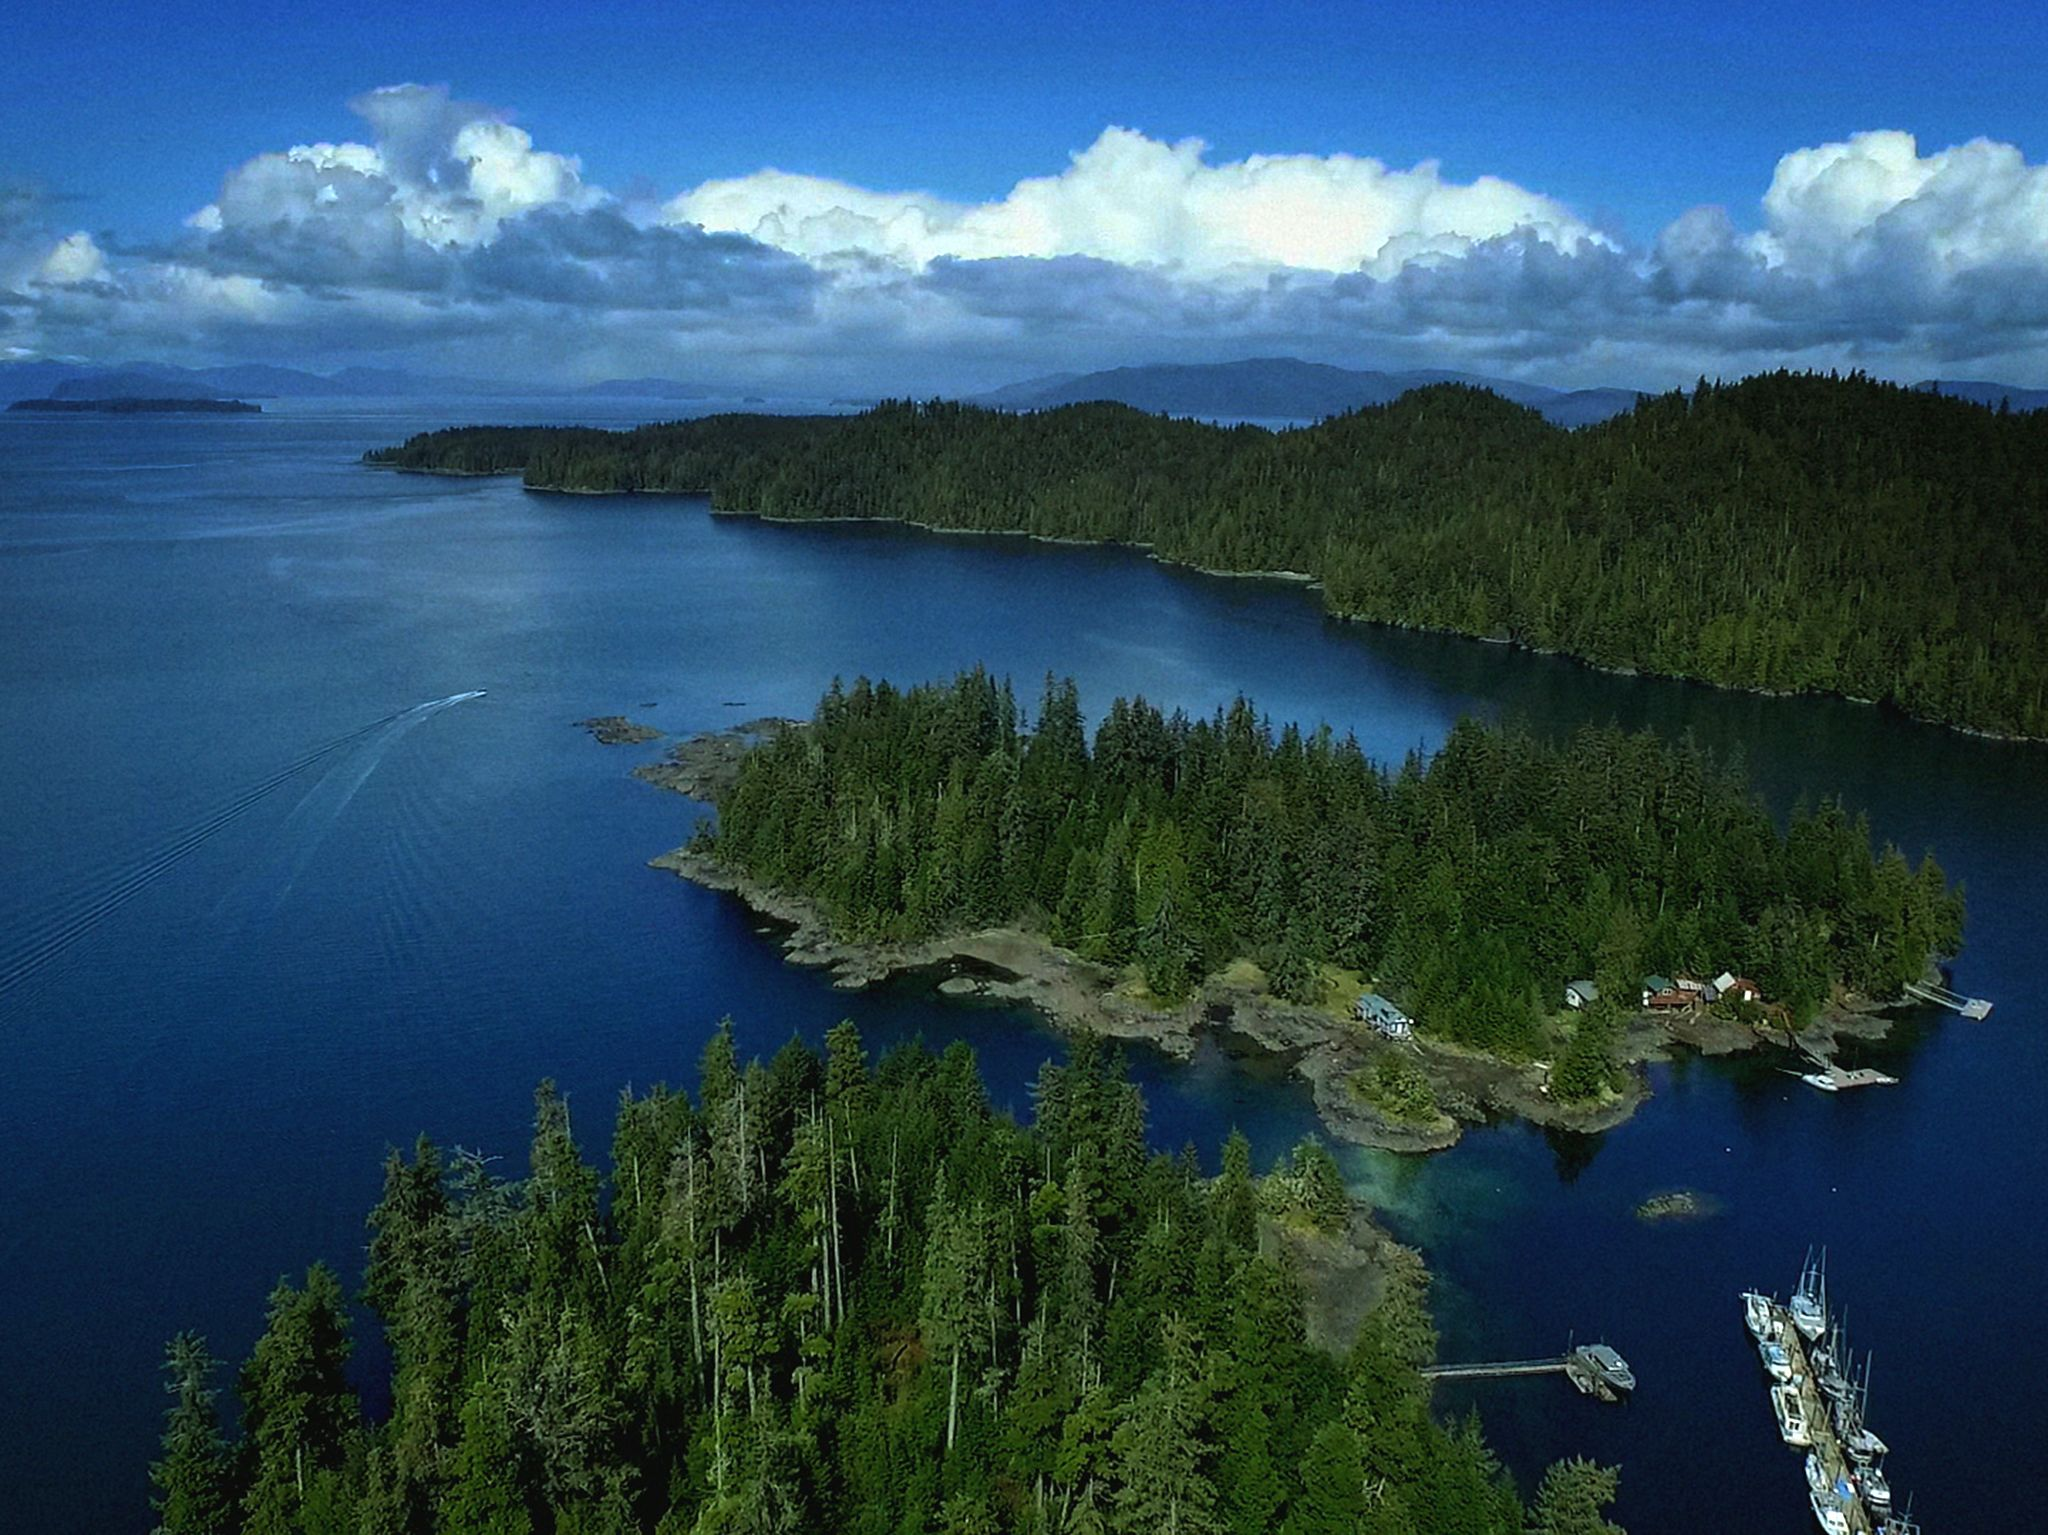 An aerial view of Port Protection. This image is from Lawless Island Alaska. [Photo of the day - July 2020]